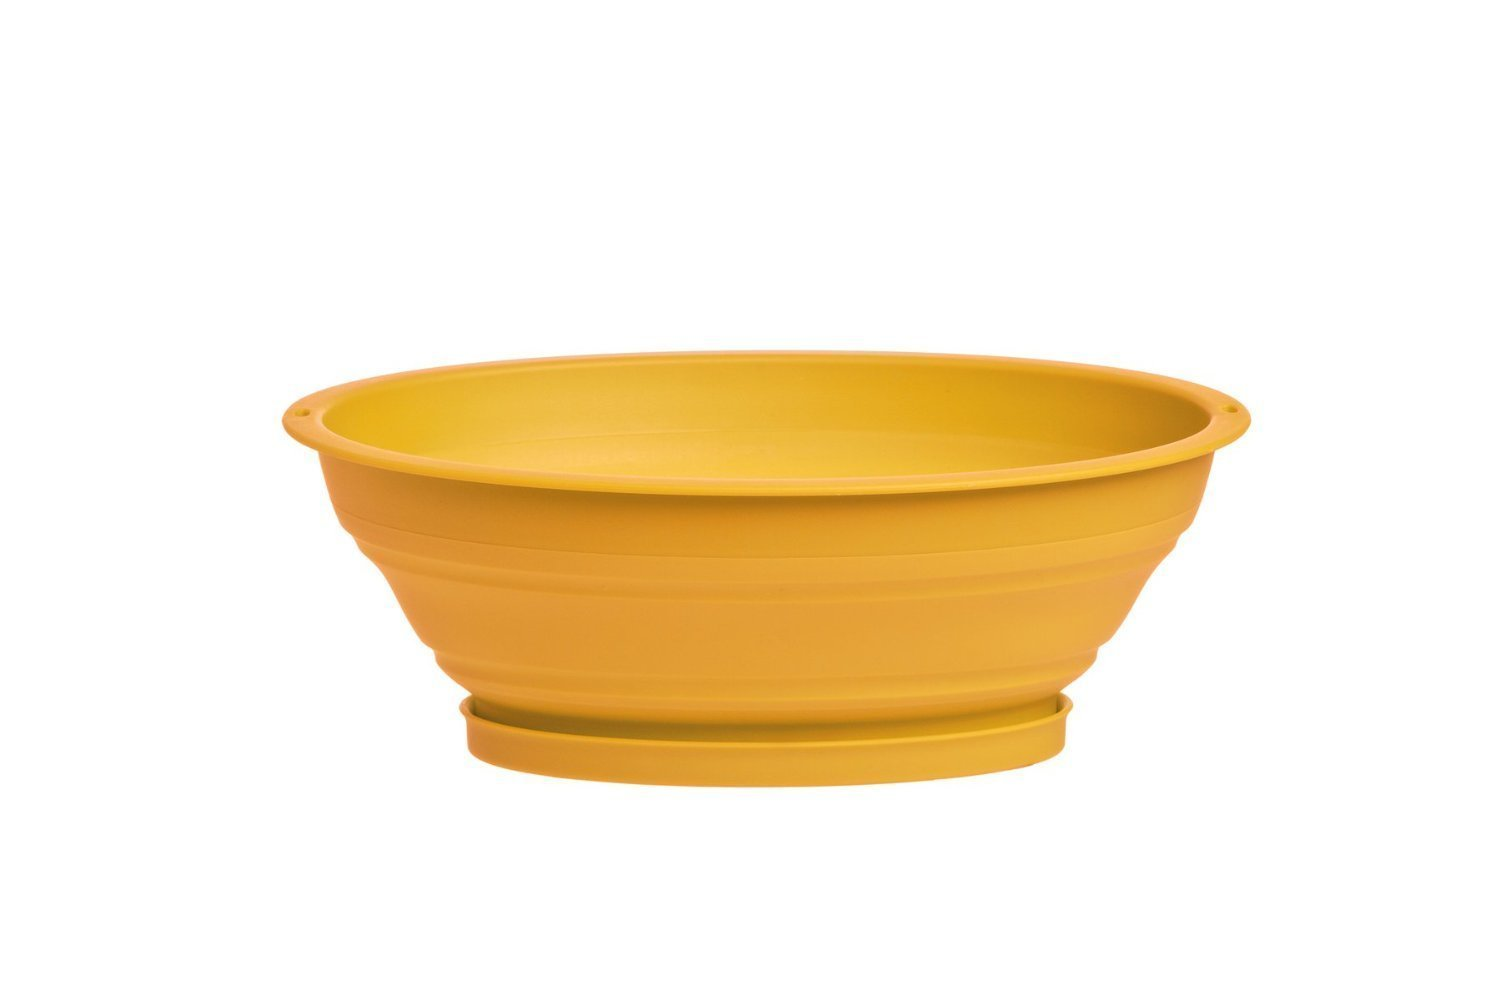 Prepworks From Progressive International CC-60 Collapsible Mini Colander, 3.5 Cup, Yellow (2, YELLOW) by Prepworks from Progressive